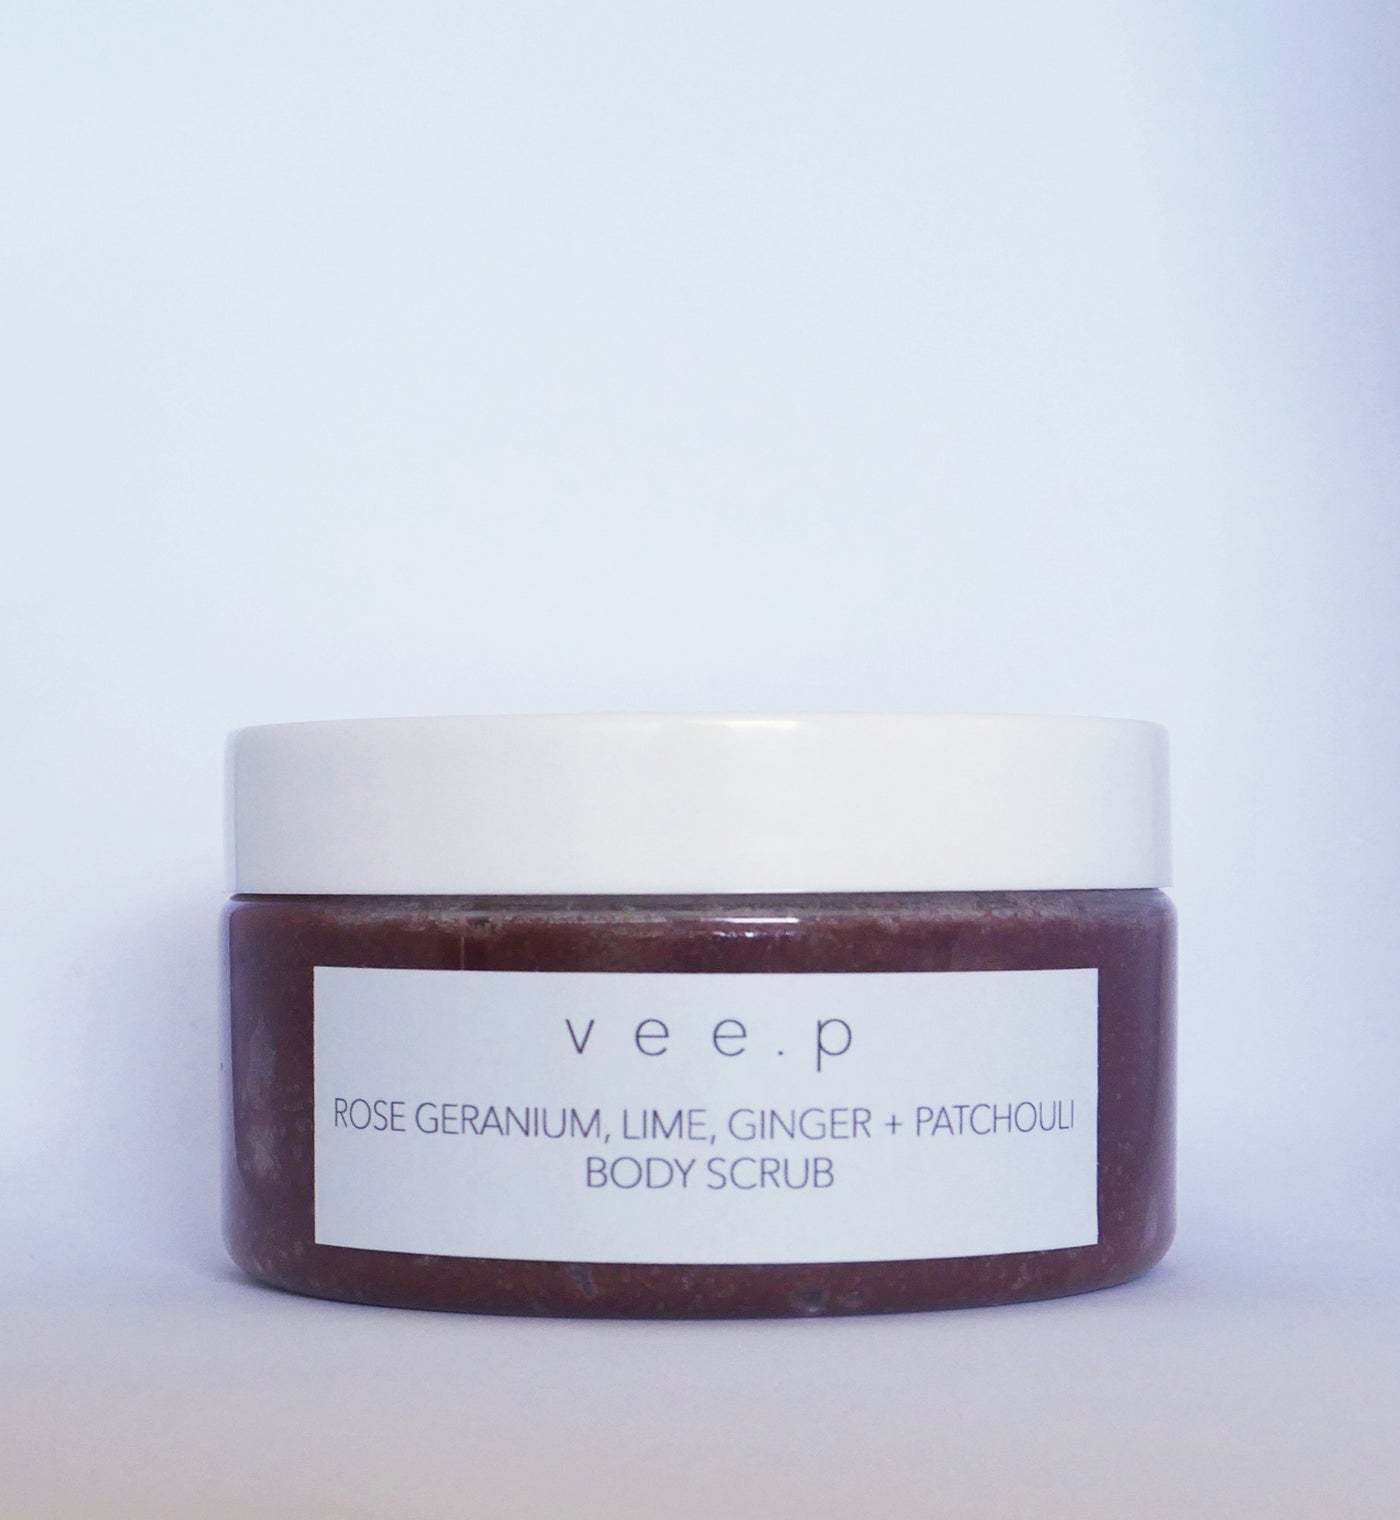 POLLY PICKET BODY SCRUB - Rose Geranium, Lime, Ginger & Patchouli